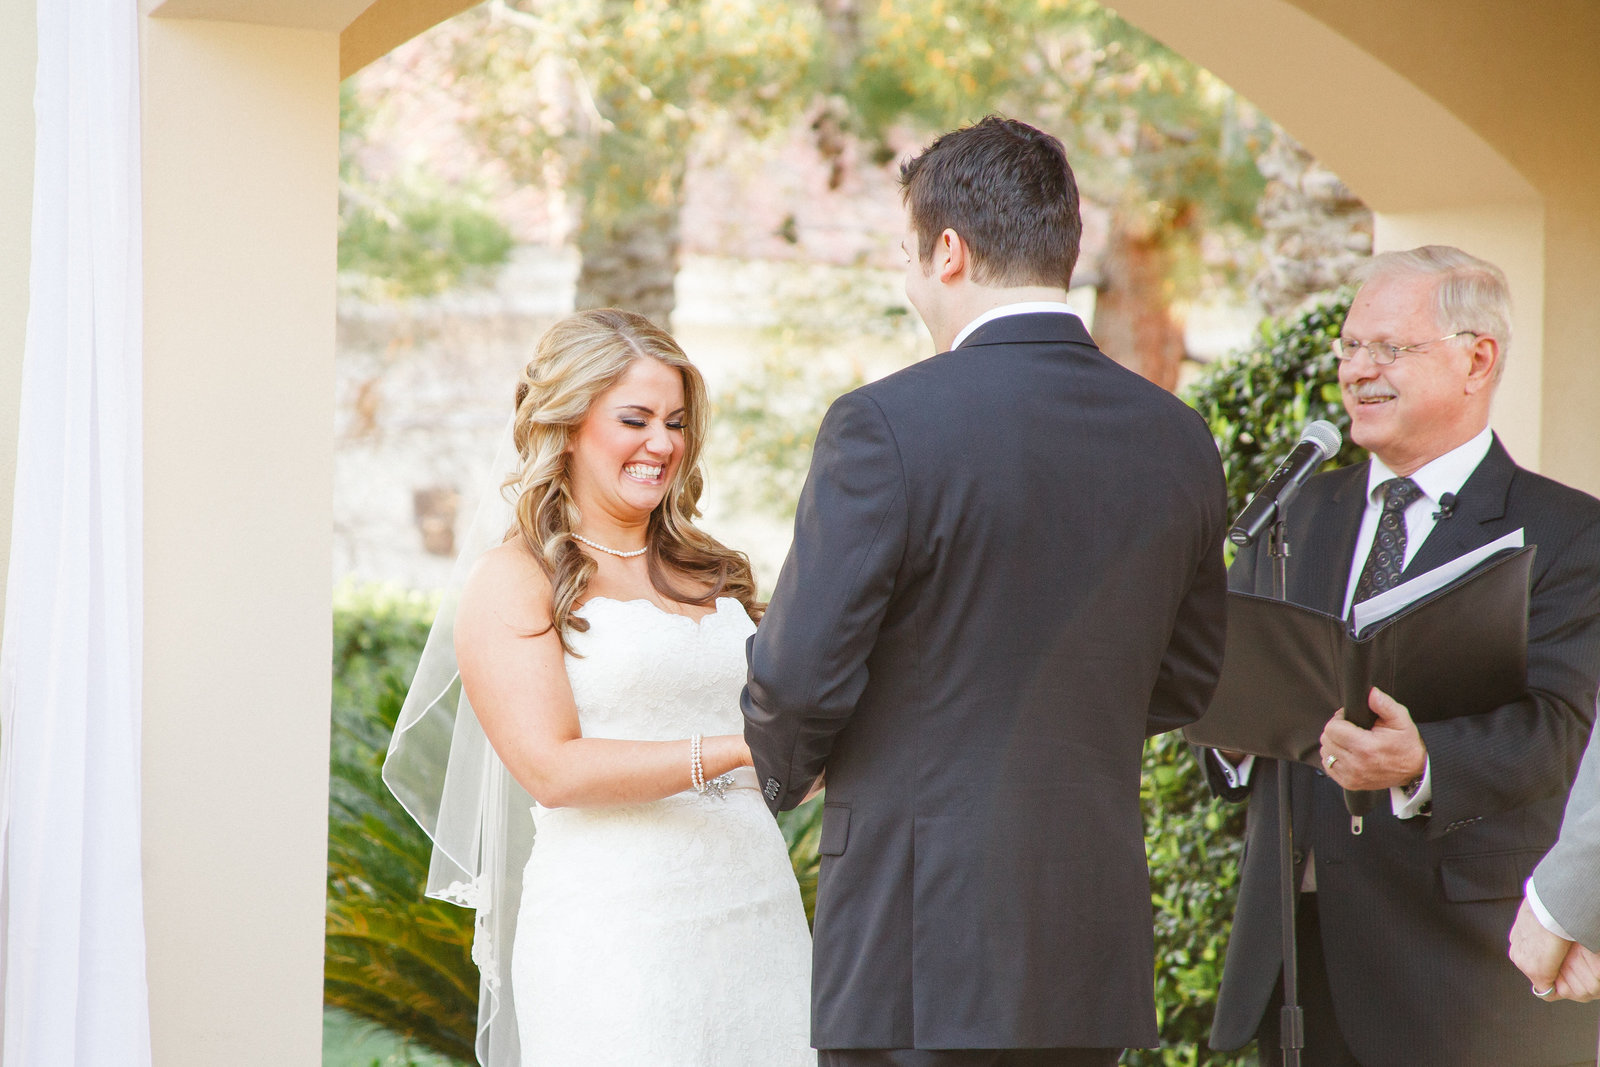 Photo of bride and groom exchanging vows at their outdoor wedding ceremony | Susie Moreno Photography